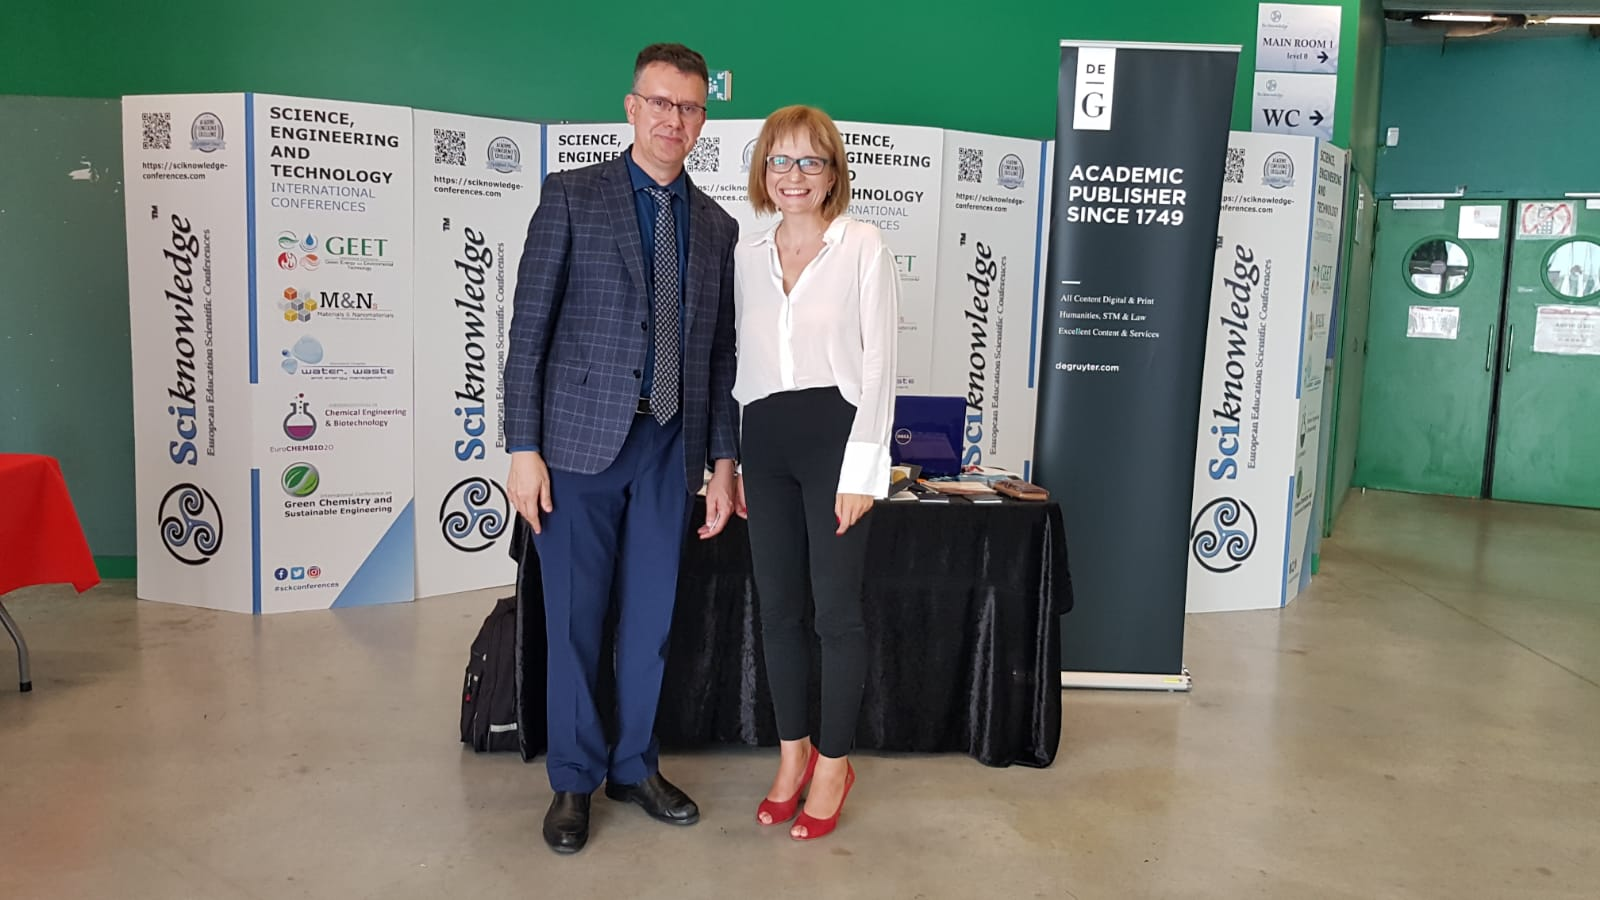 Prof. Mario Monzón Verona, President of the Organizing Committee, and Ewa Chmielewska, De Gruyter, 19th International Conference on Materials and Nanomaterials (MNs-19), Paris, France, July 18, 2019   © Courtesy of Ewa Chmielewska and Paula Leśna Szreter/De Gruyter.